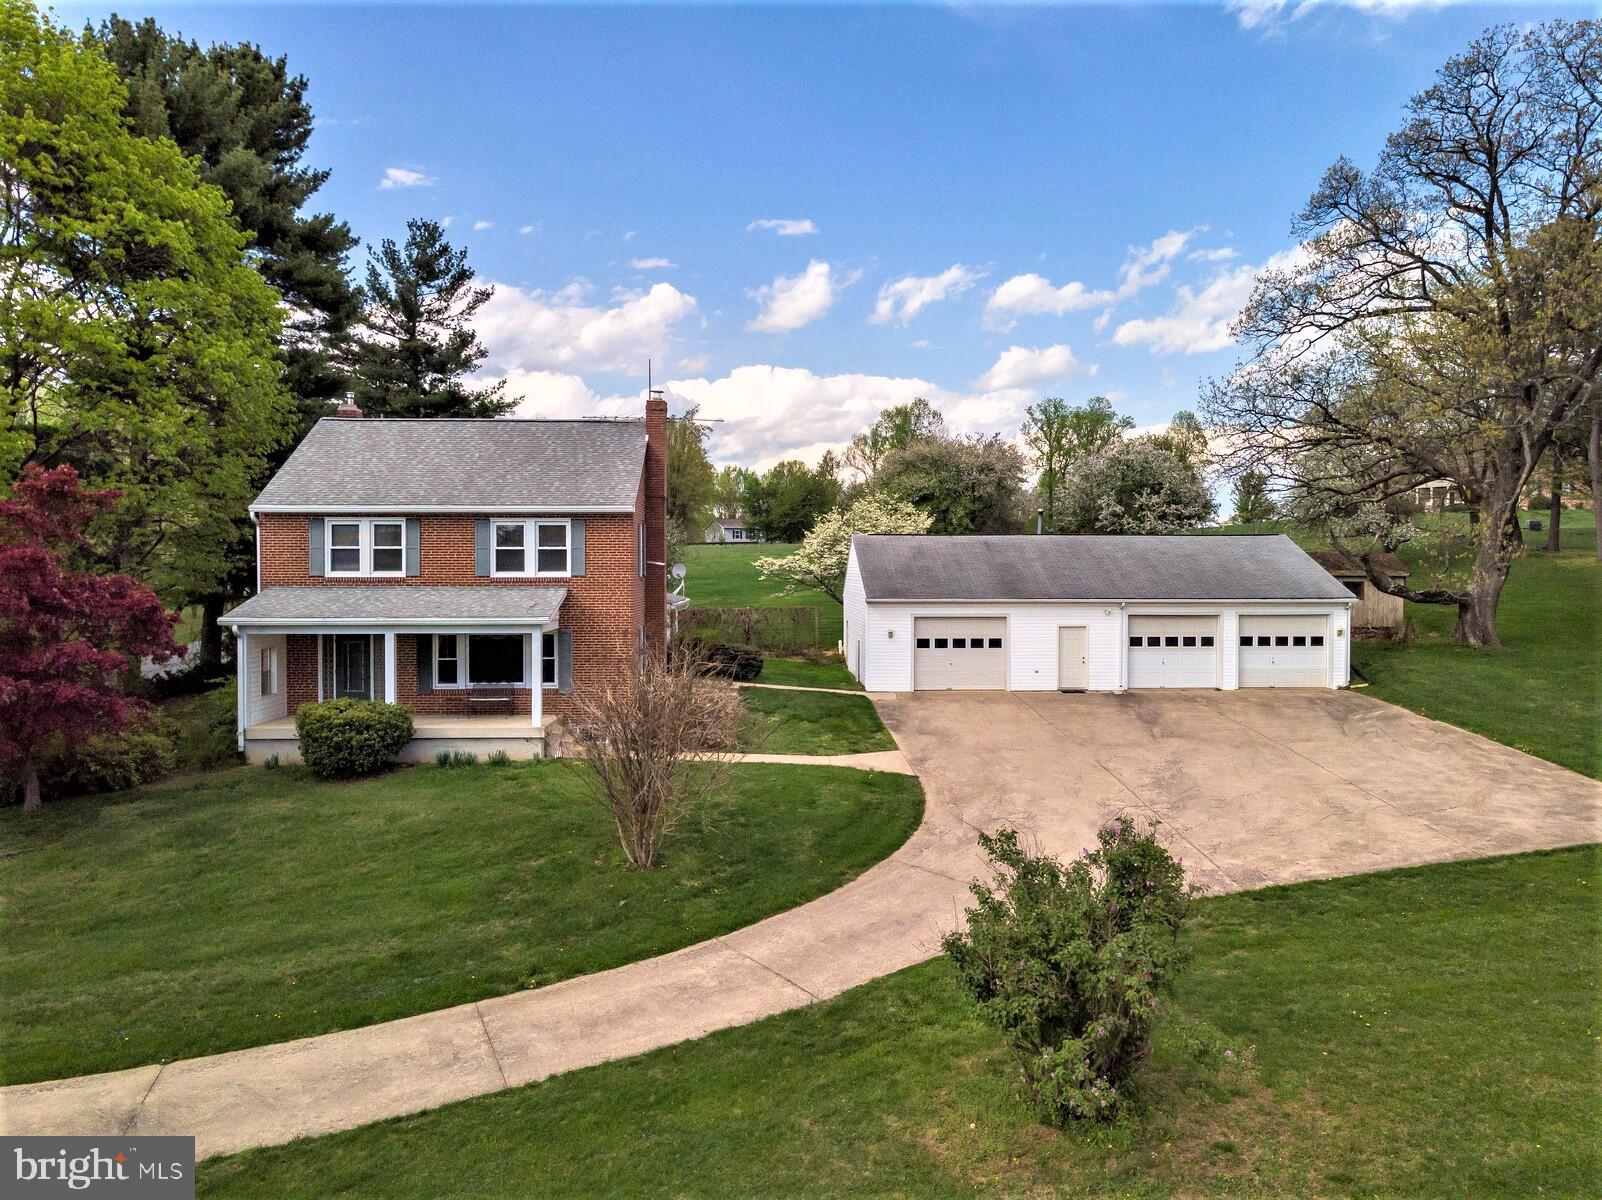 Here is your chance to own this 5 Bedroom, 2.5 Bathroom brick Colonial situated on 1.5 scenic acres.